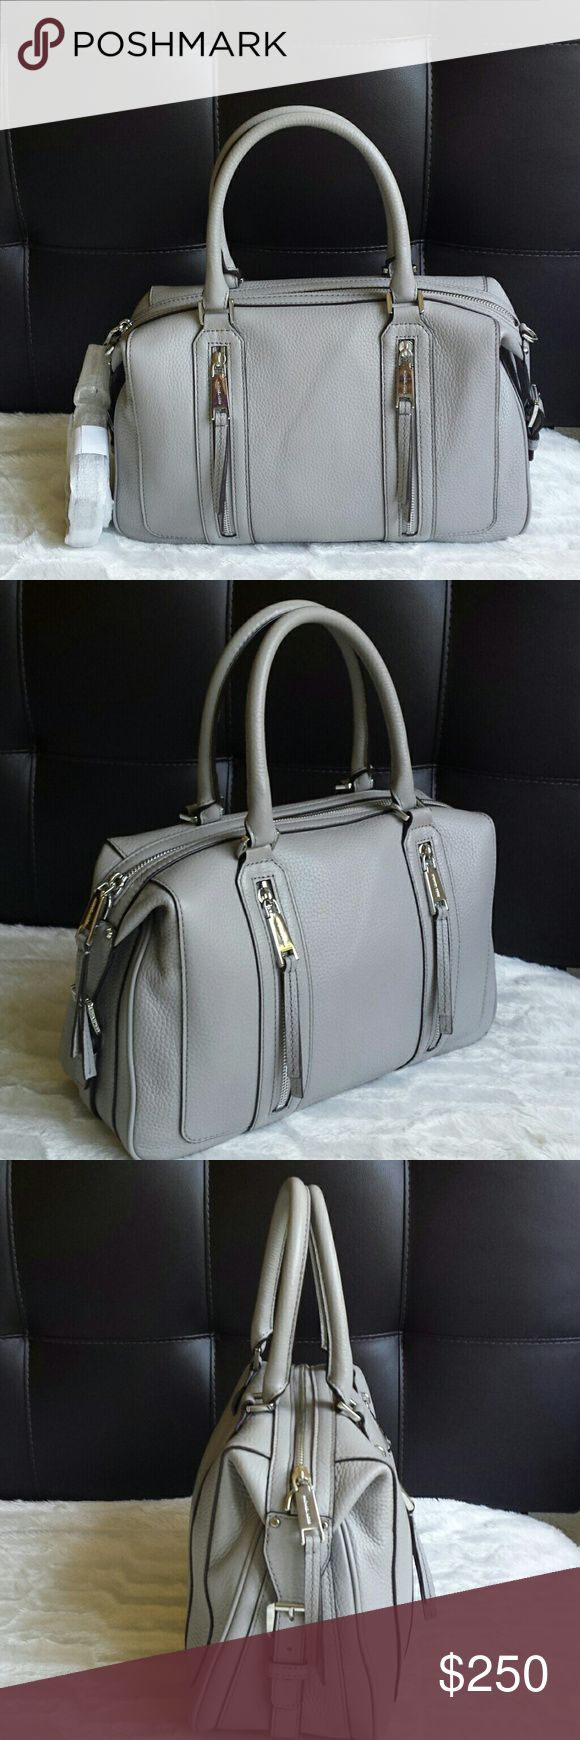 Michael Kors Julia Satchel Leather Pearl Grey Michael Kors Julia Large Satchel Leather in Pearl Grey  New with tag! Silver hardware. Never worn!  Two zip pocket in front, 1 slip pocket at back. Inside: beige lining, 1 zip pocket, 4 slip pockets.   This pearl grey is perfect all year round, look good in winter or summer! Michael Kors Bags Satchels